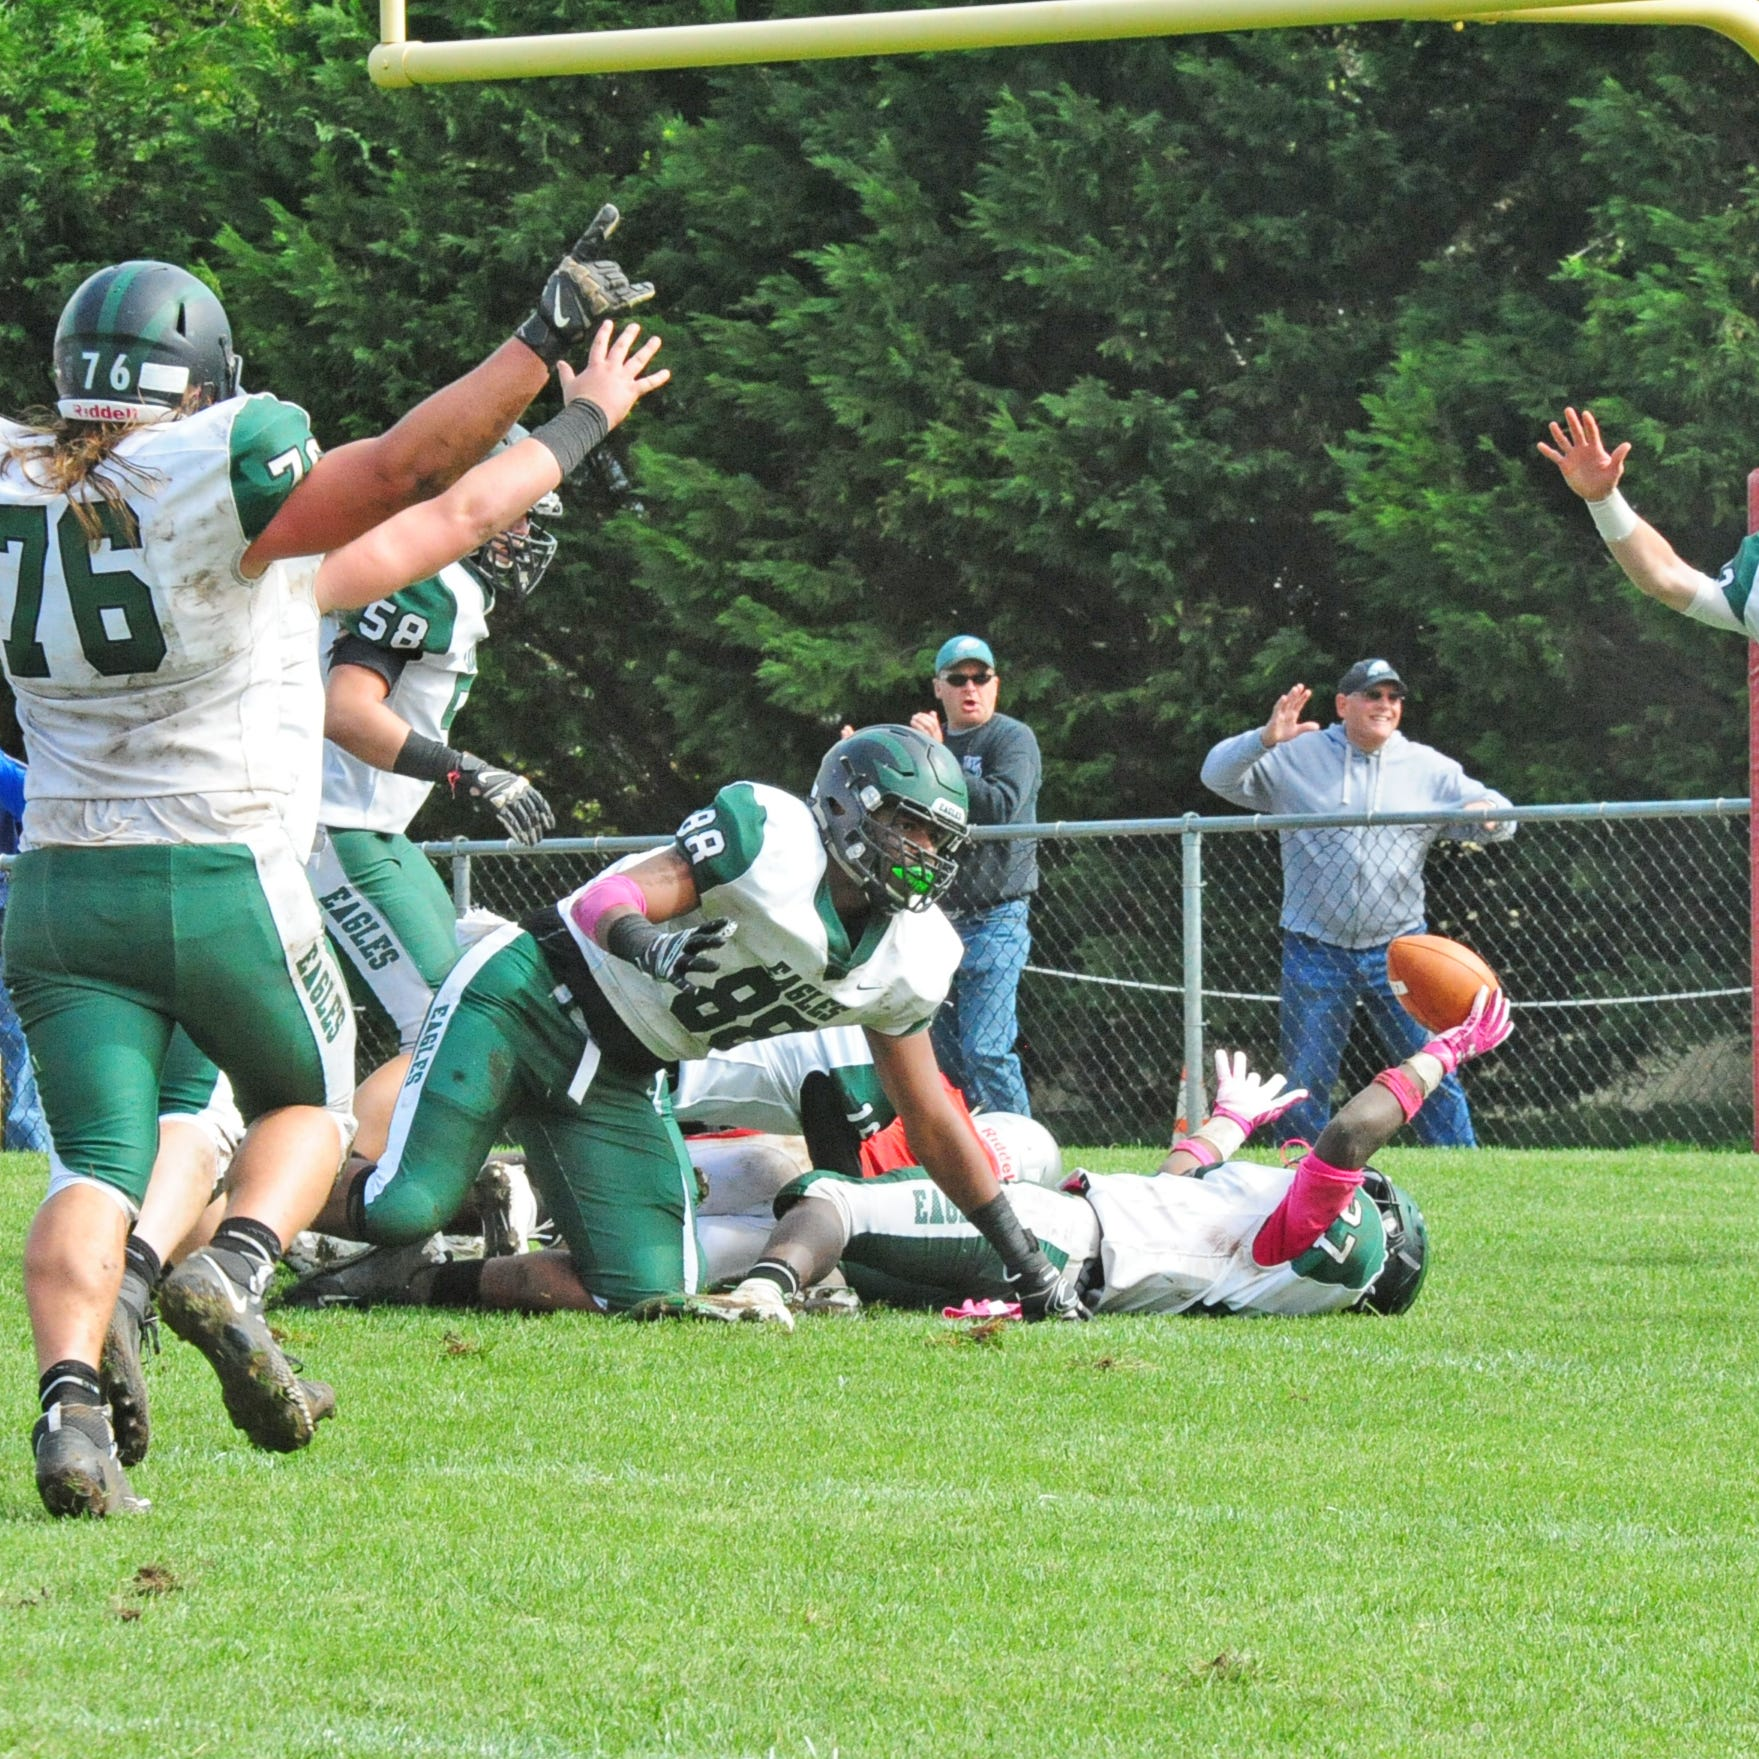 South Jersey Football: West Deptford ends St. Joe's rough week with 51-0 rout